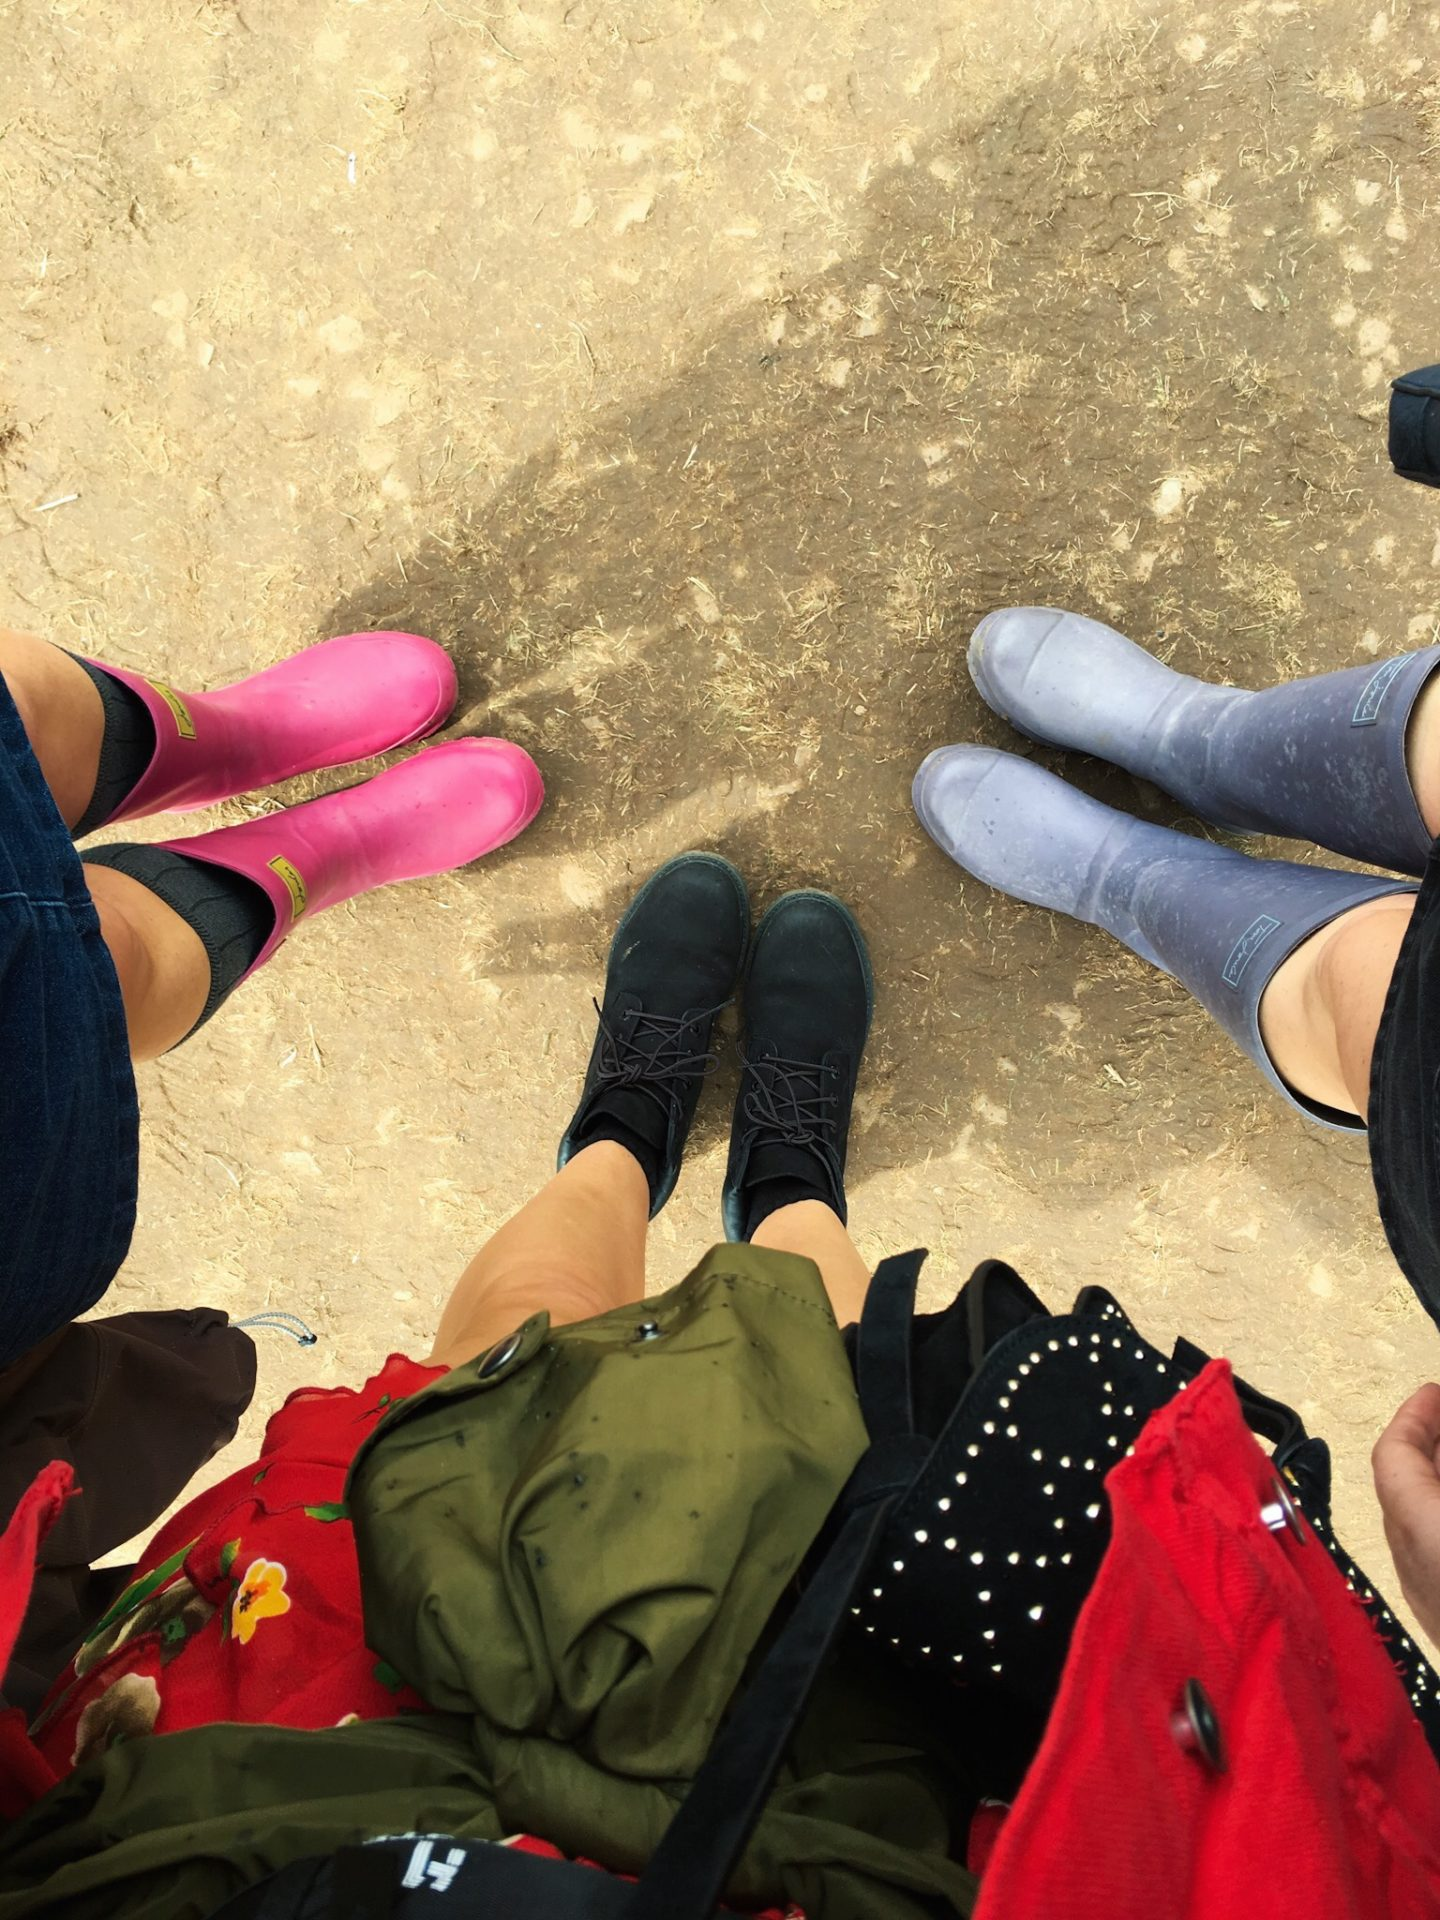 WELLIES AND TIMBERLAND BOOTS AT V FESTIVAL